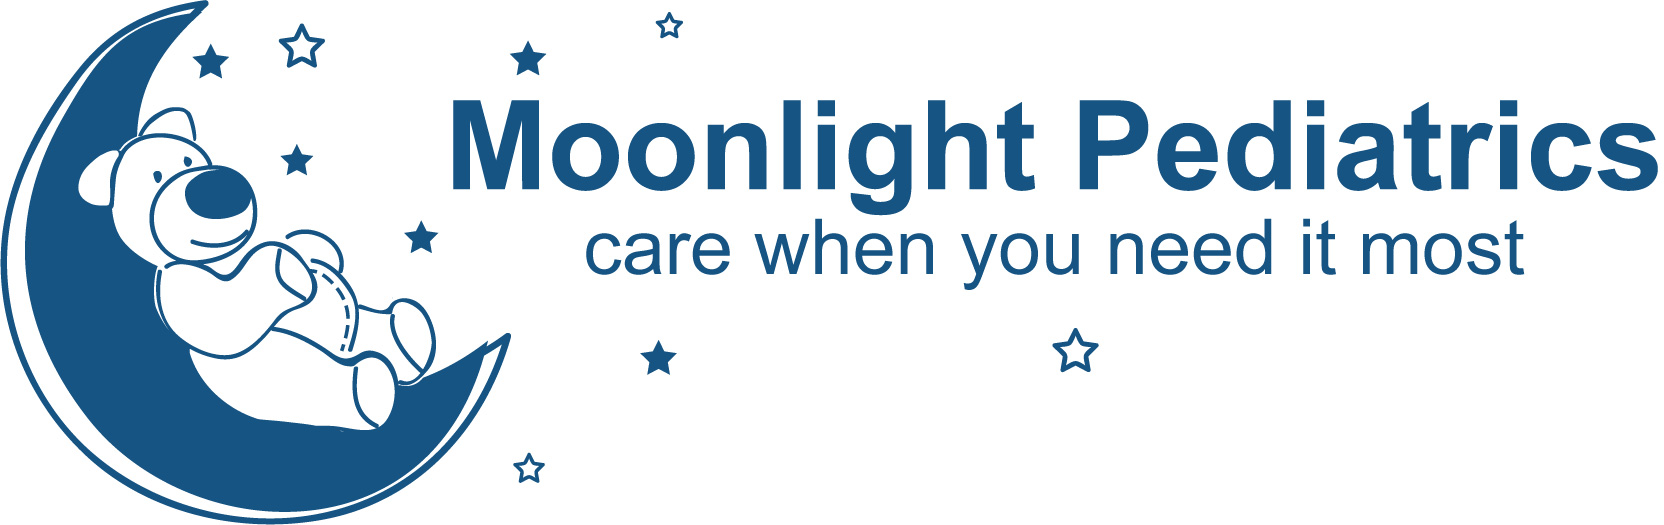 Moonlight Pediatrics